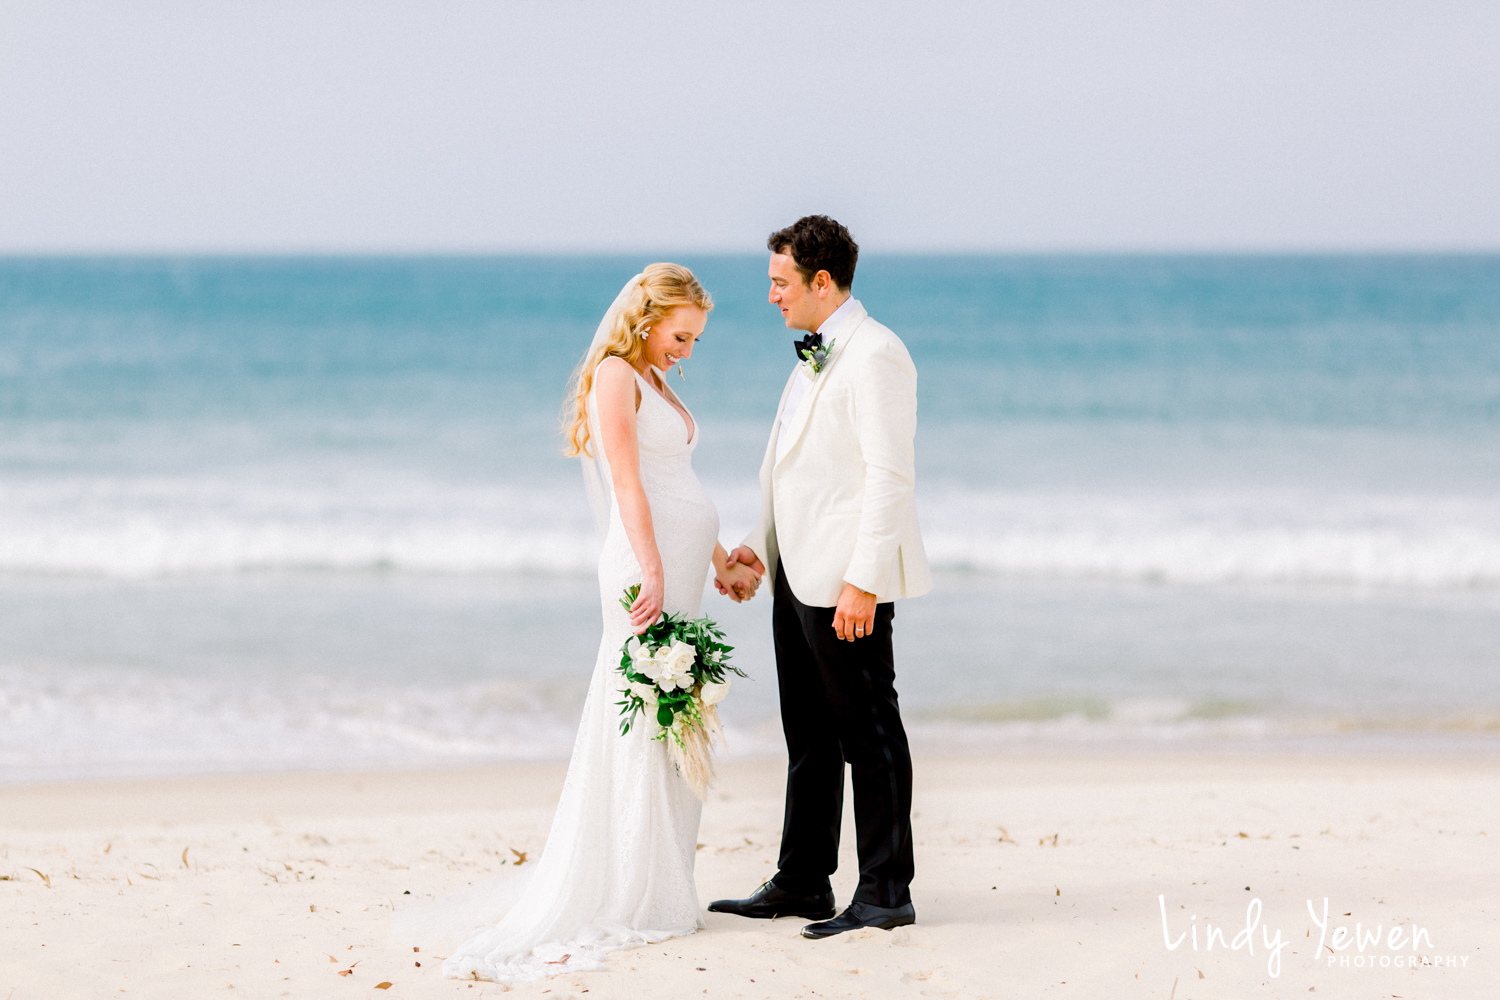 Noosa-Weddings-Amelia-Michael 212.jpg